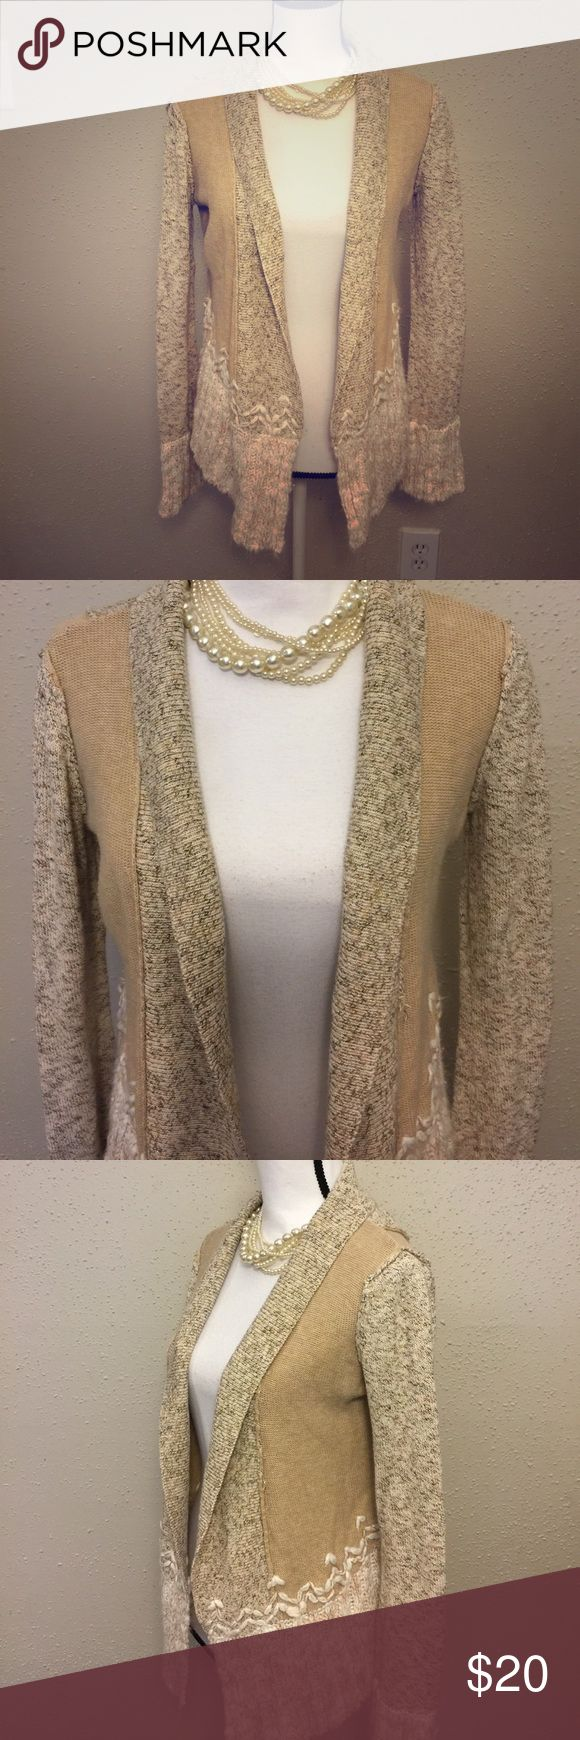 BKE Boutique Women's Size S Open Front Cardigan Great pre-owned condition BKE Sweaters Cardigans